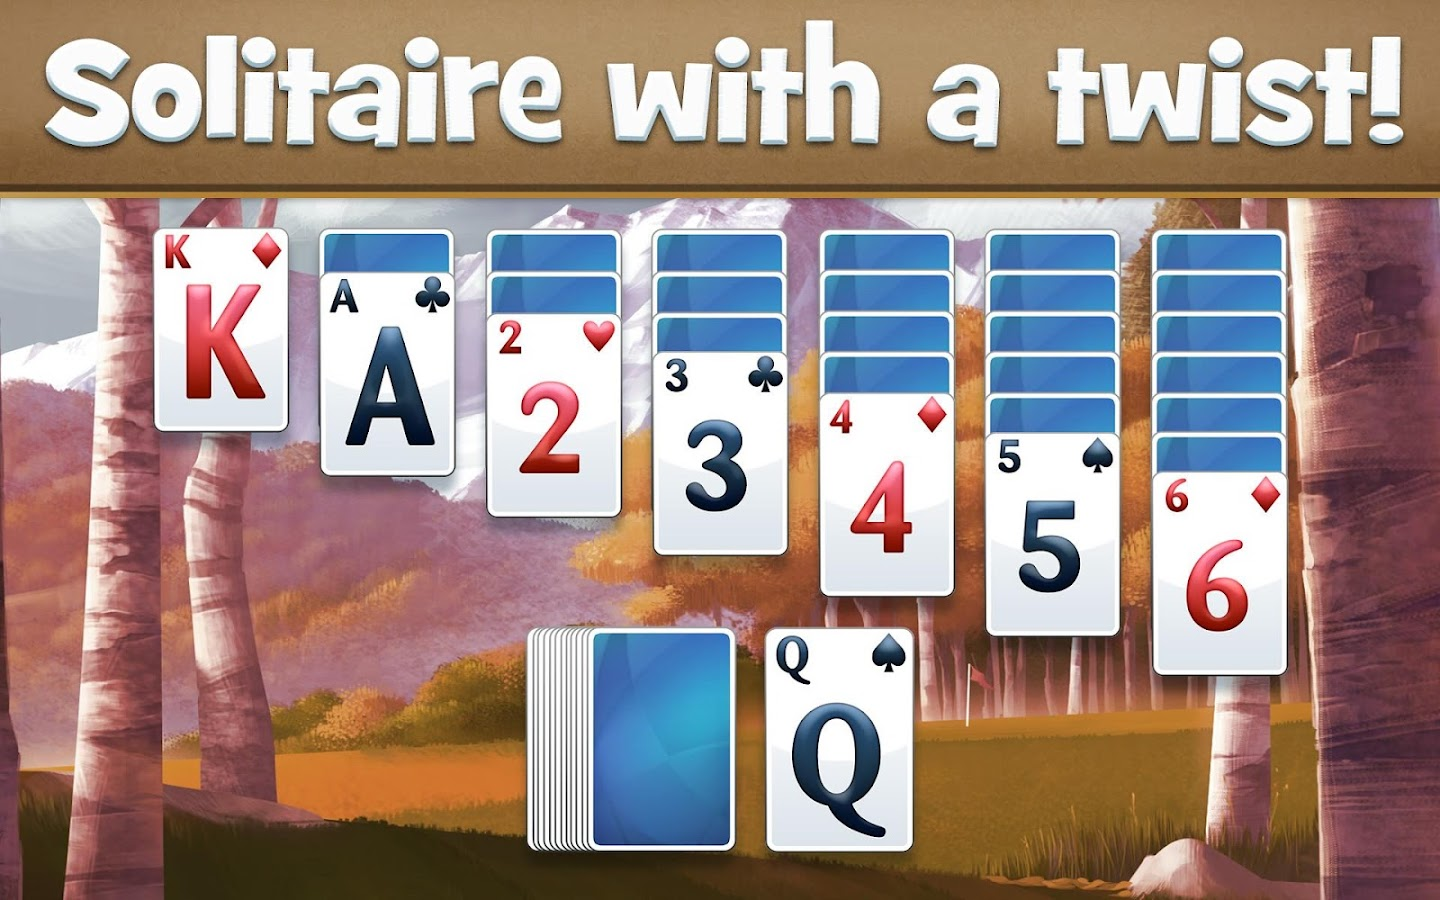 Fairway Solitaire 1 40 64 APK Download - Android Card Games